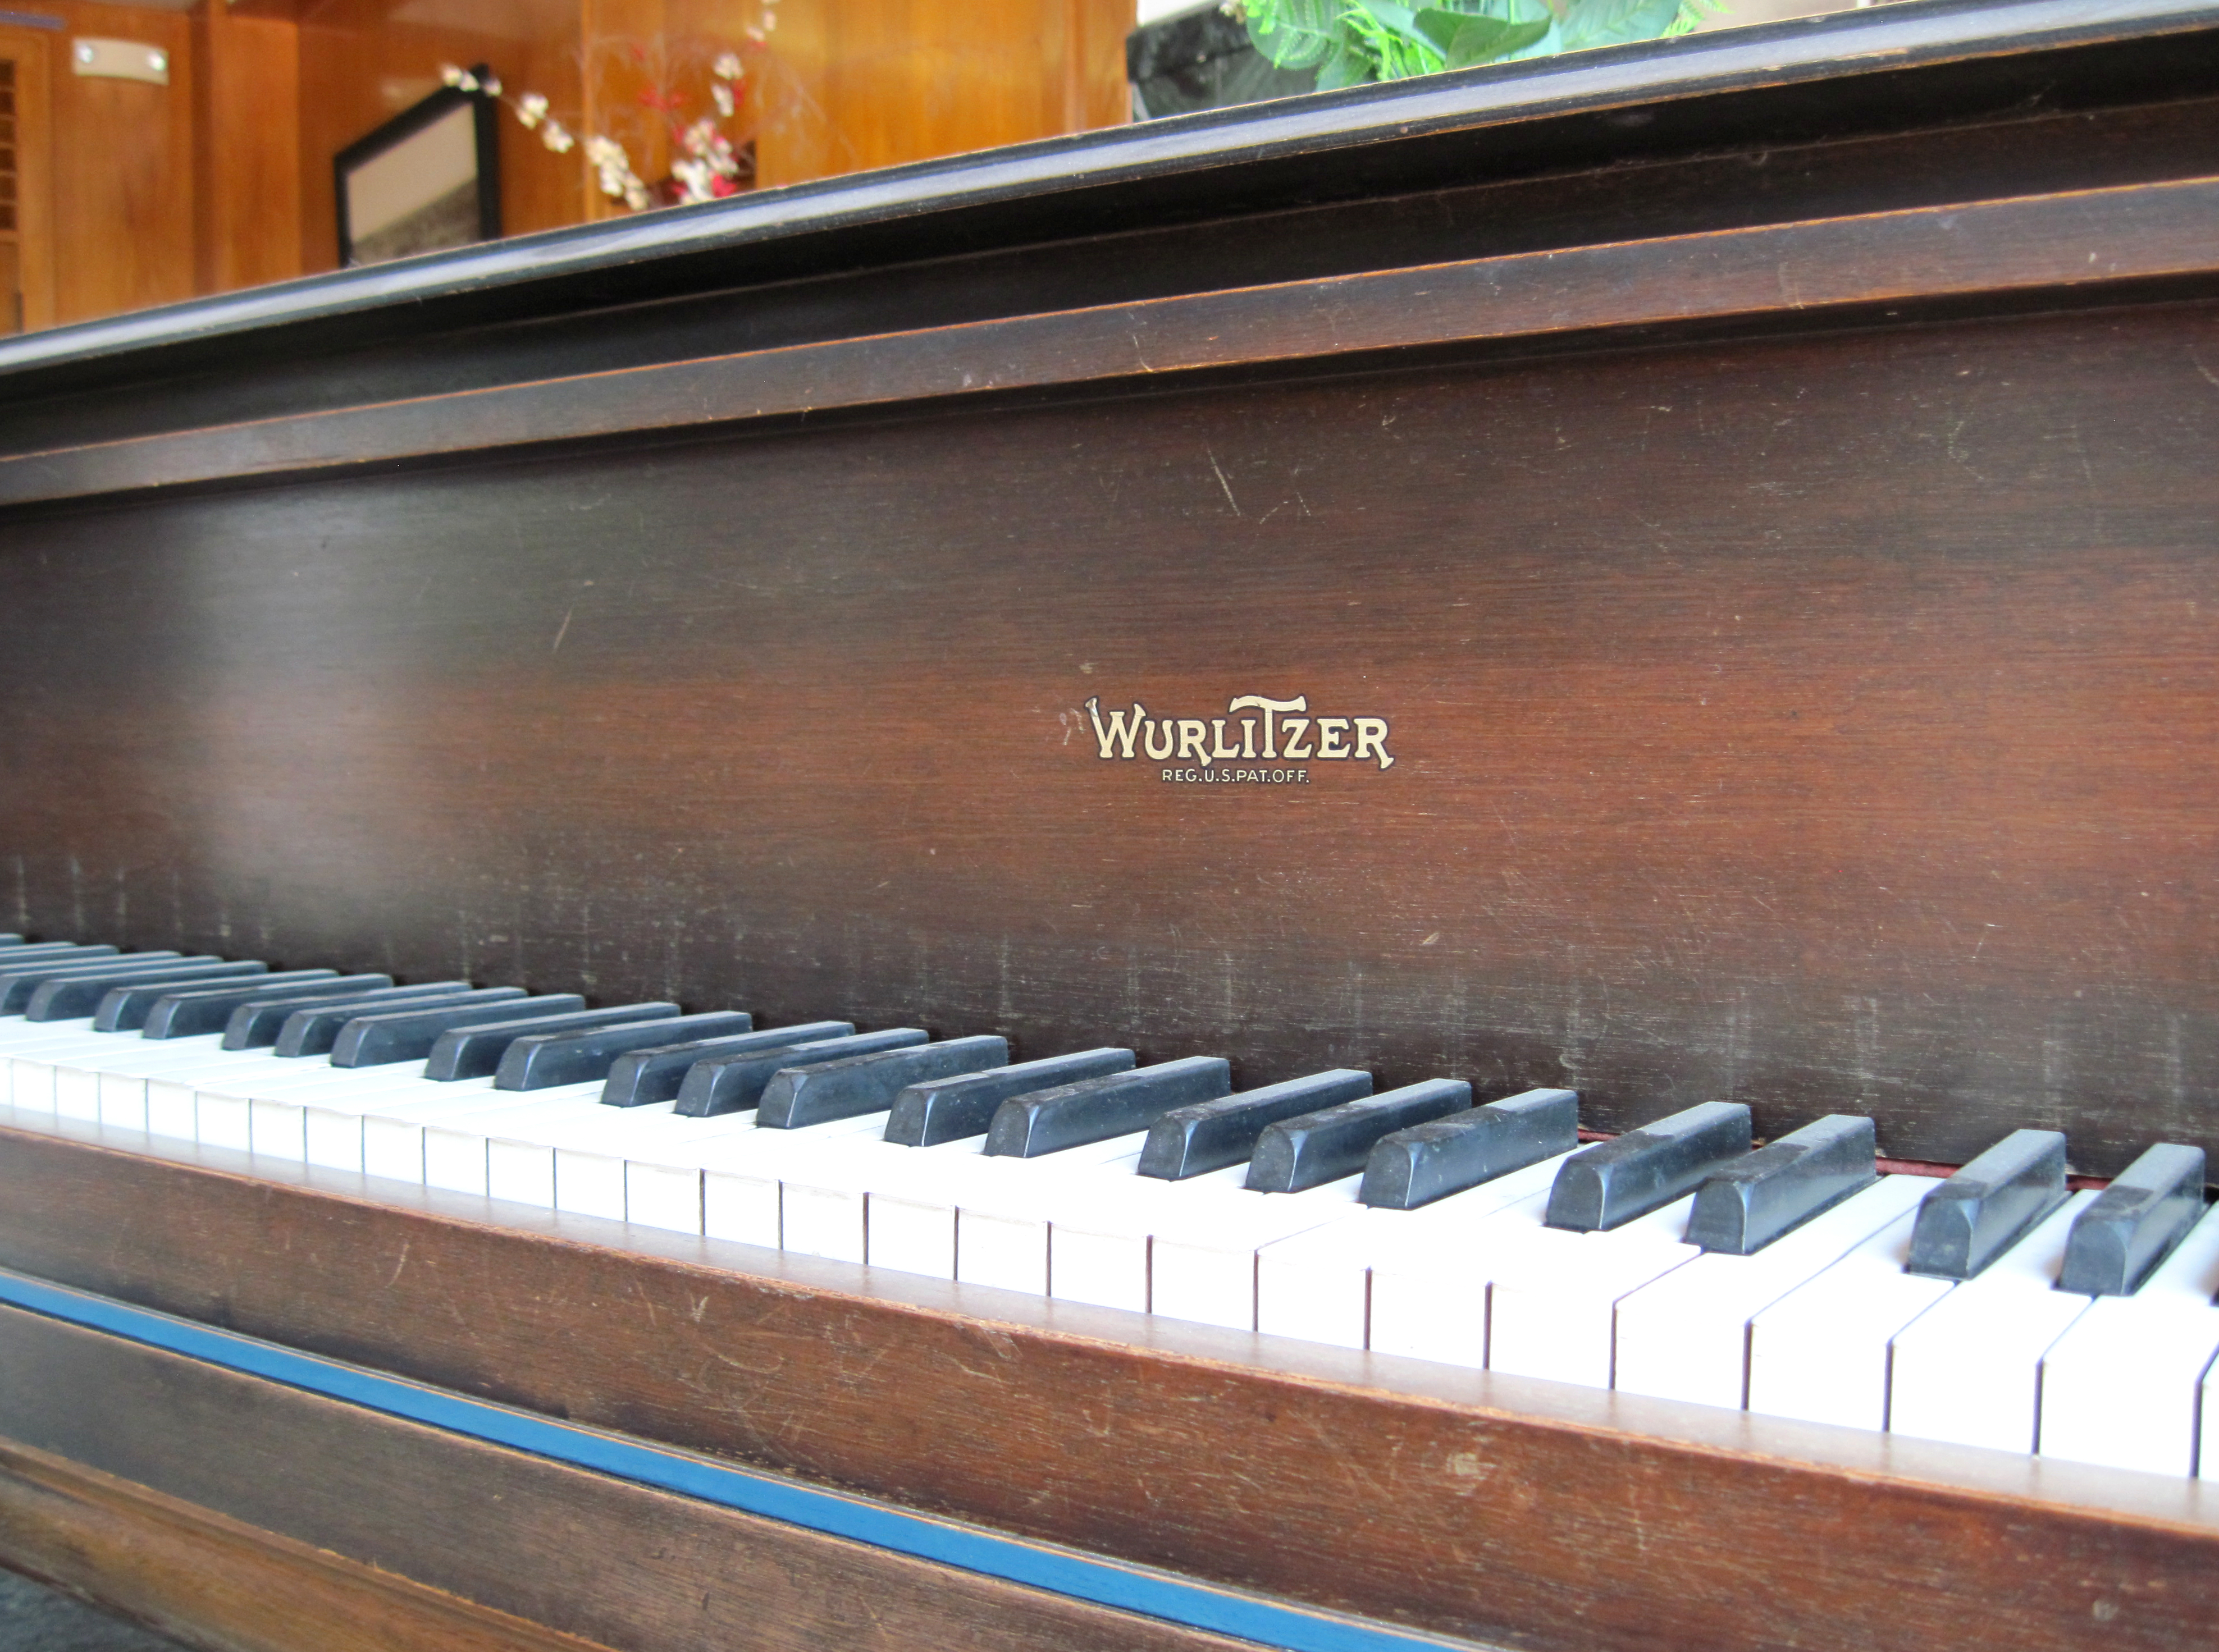 The Date of your Wurlitzer Electric Piano DocWurly